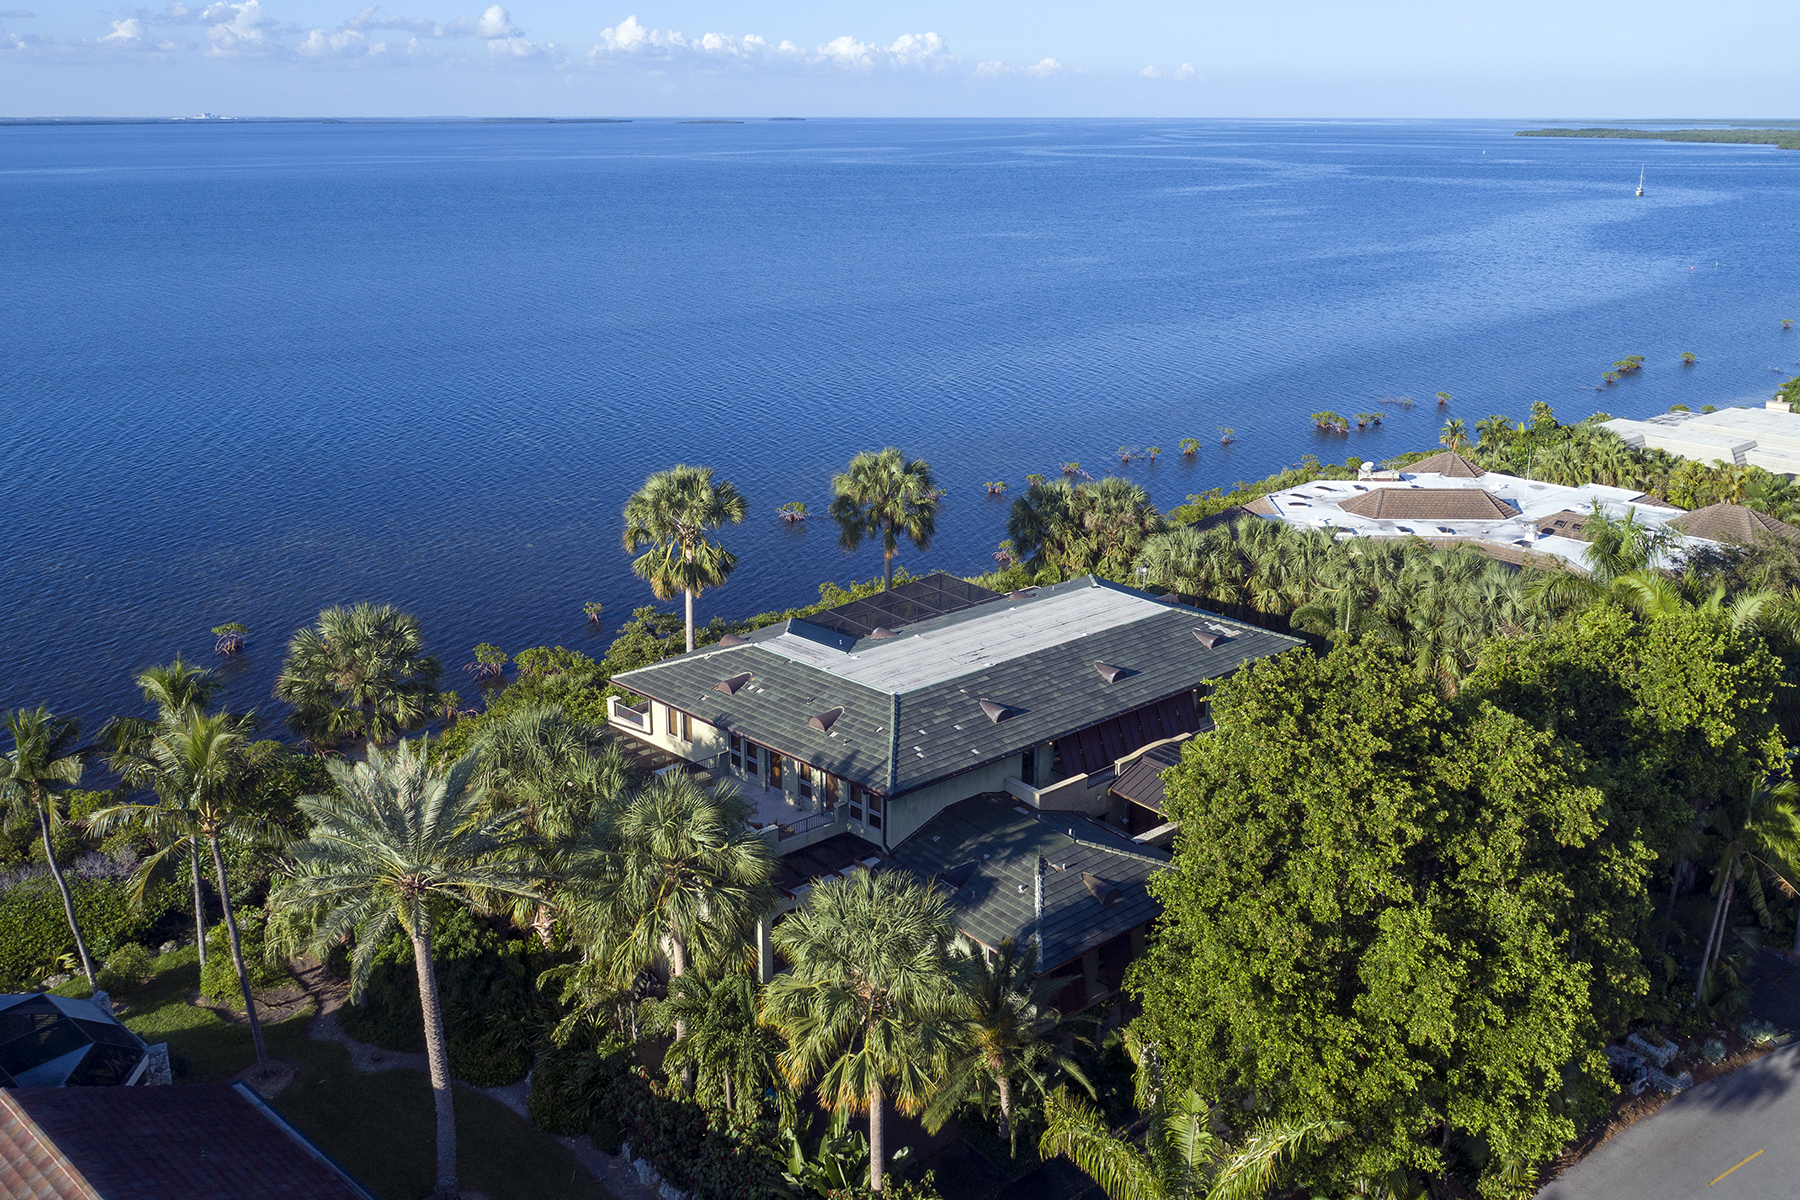 Single Family Homes for Sale at 6 West Snapper Point Drive, Key Largo, FL 6 West Snapper Point Drive Key Largo, Florida 33037 United States